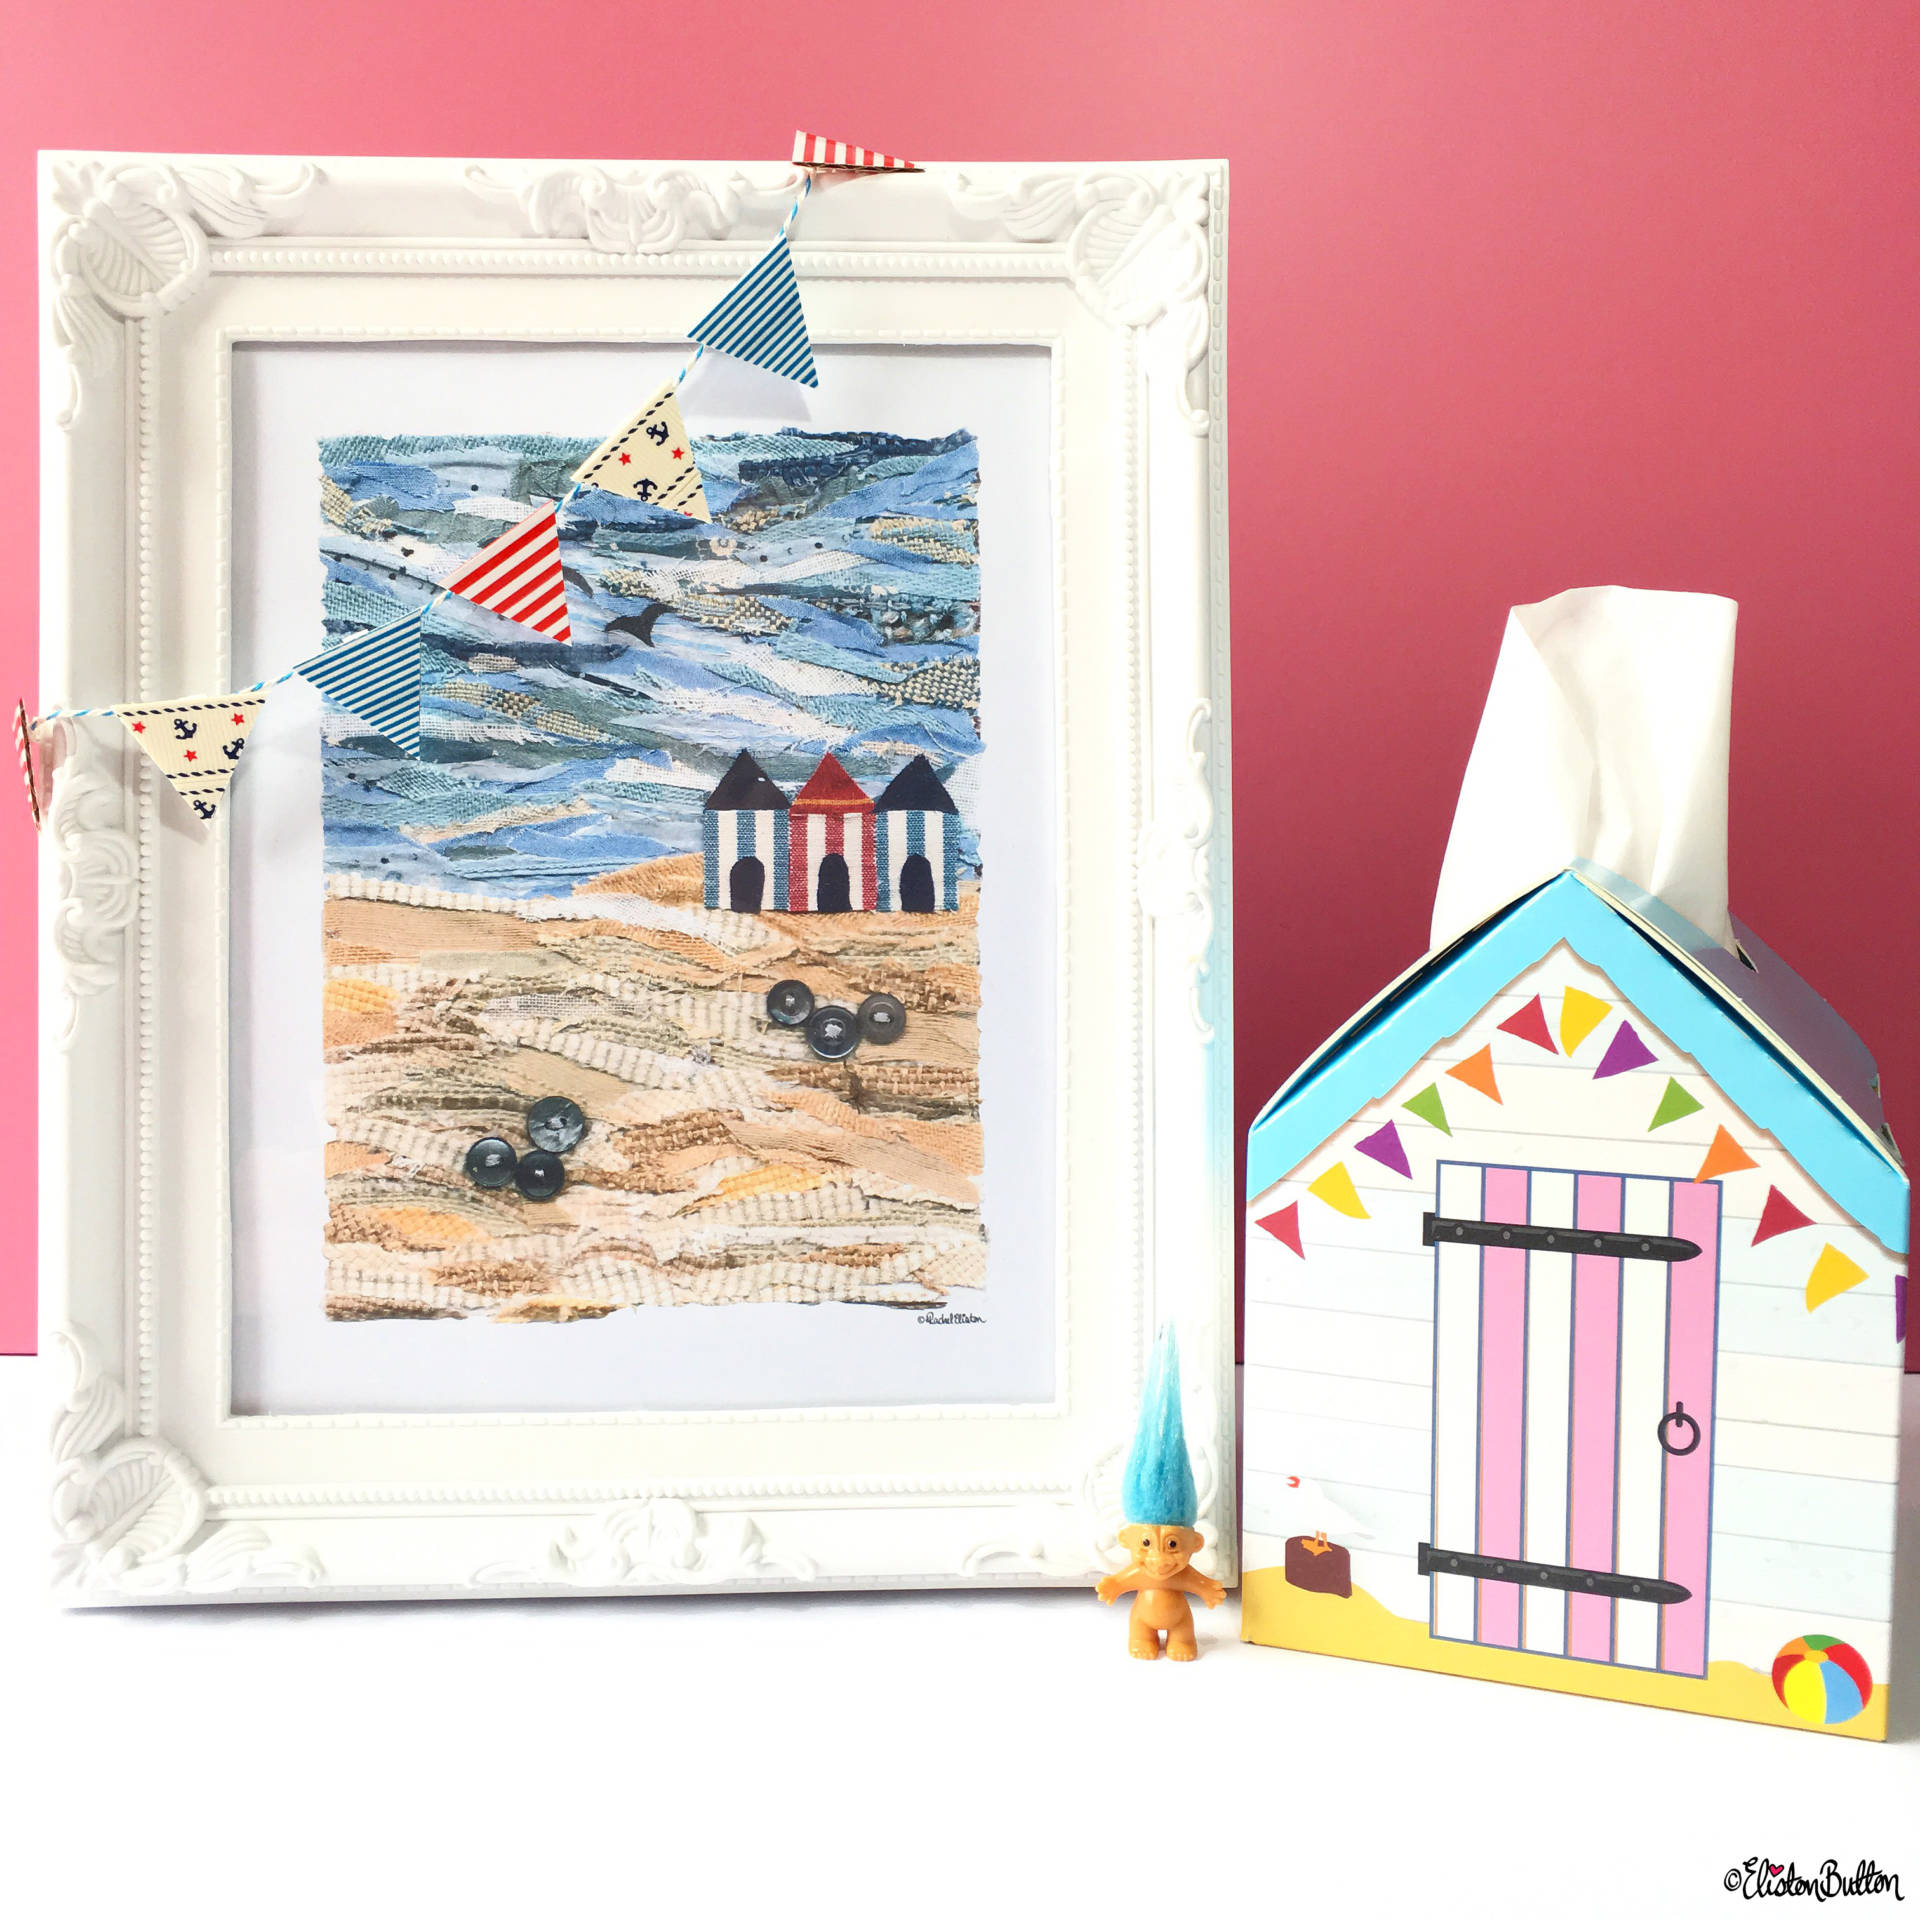 Beach Hut Seaside Fabric Collage and Beach Hut Tissue Box - Around Here…September 2016 at www.elistonbutton.com - Eliston Button - That Crafty Kid – Art, Design, Craft & Adventure.